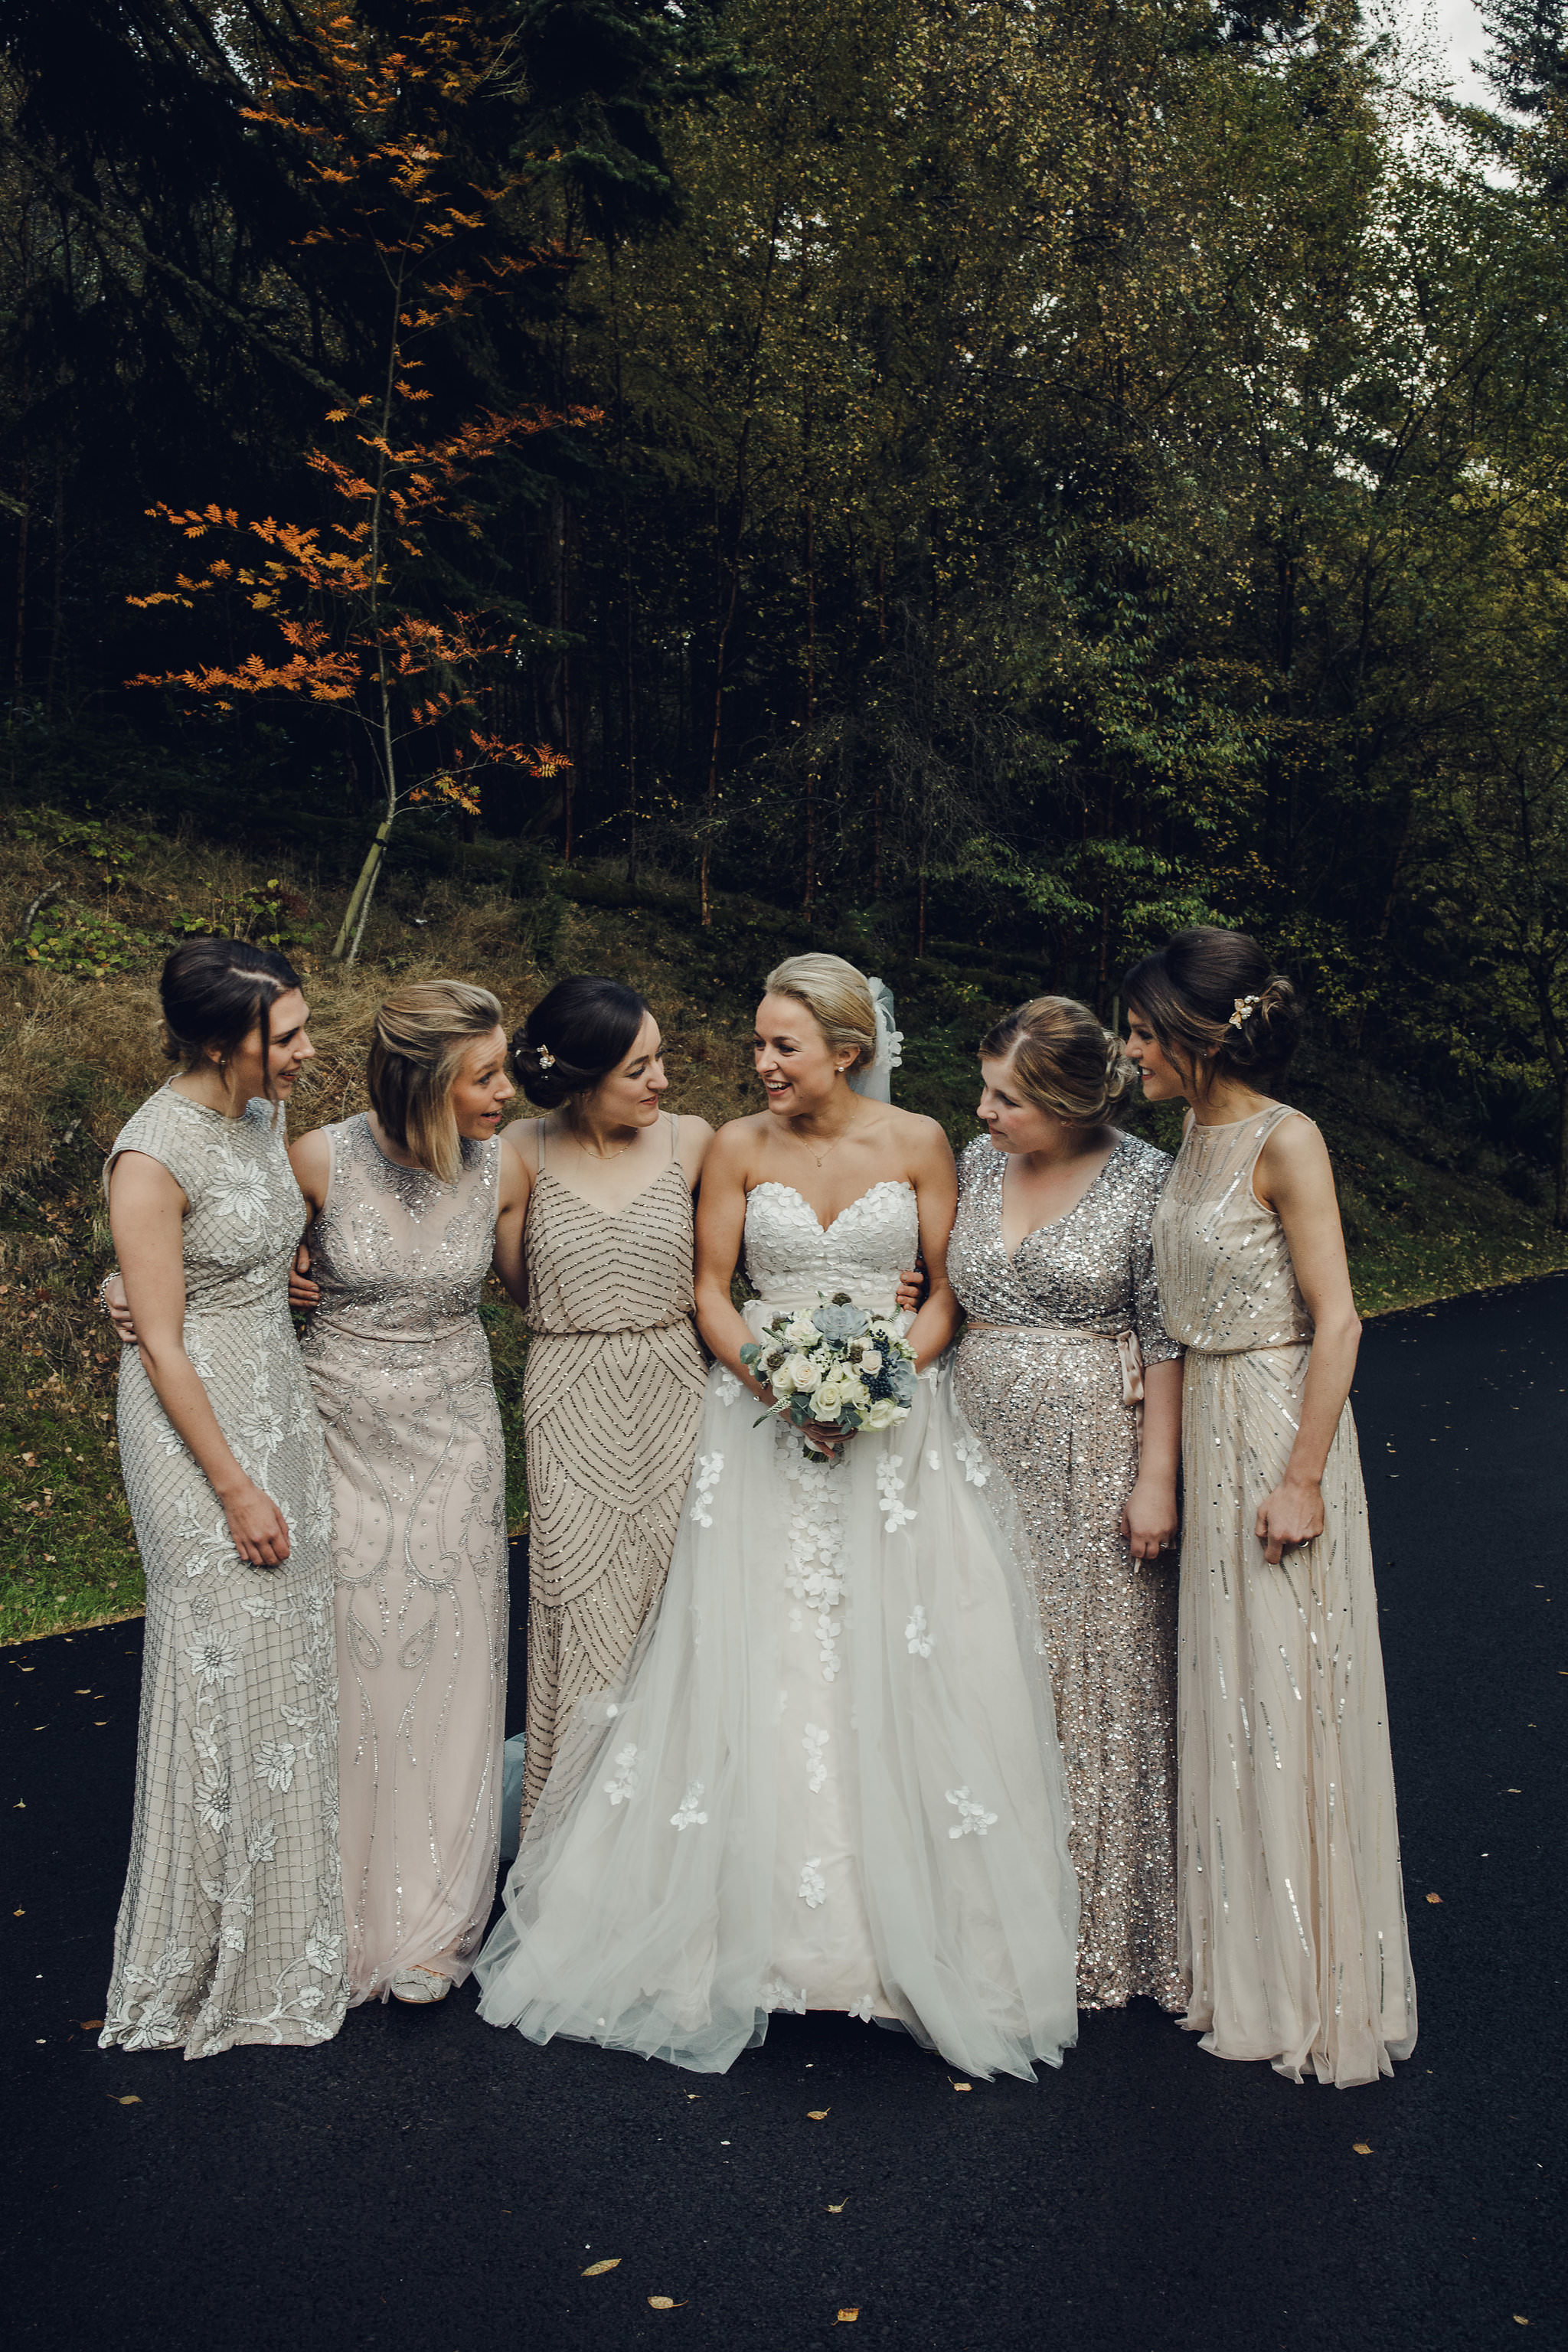 Wedding Group Shots With Bridesmaids In Sequinned Dresses